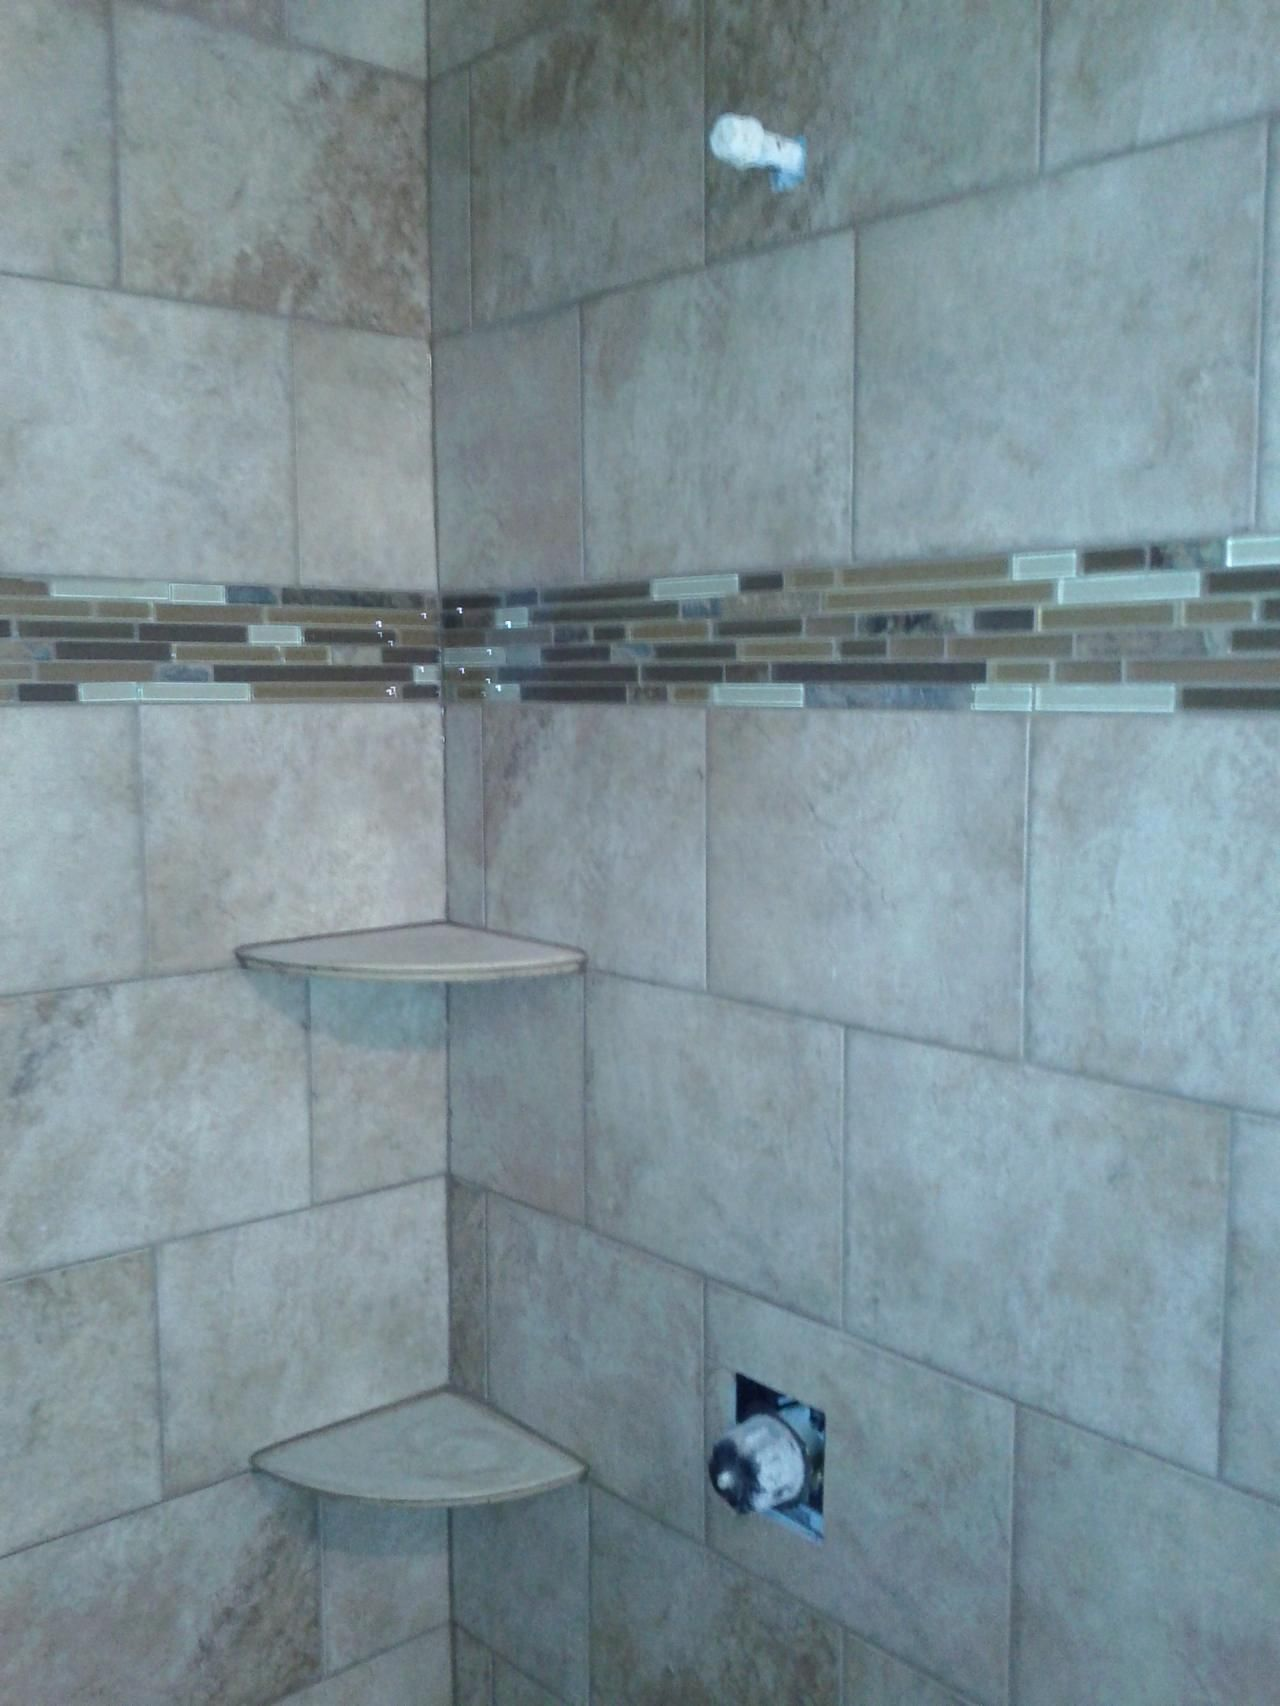 Tile For Bathroom Shower Walls Large Tile For Shower Walls Picture Shows A Brick Pattern